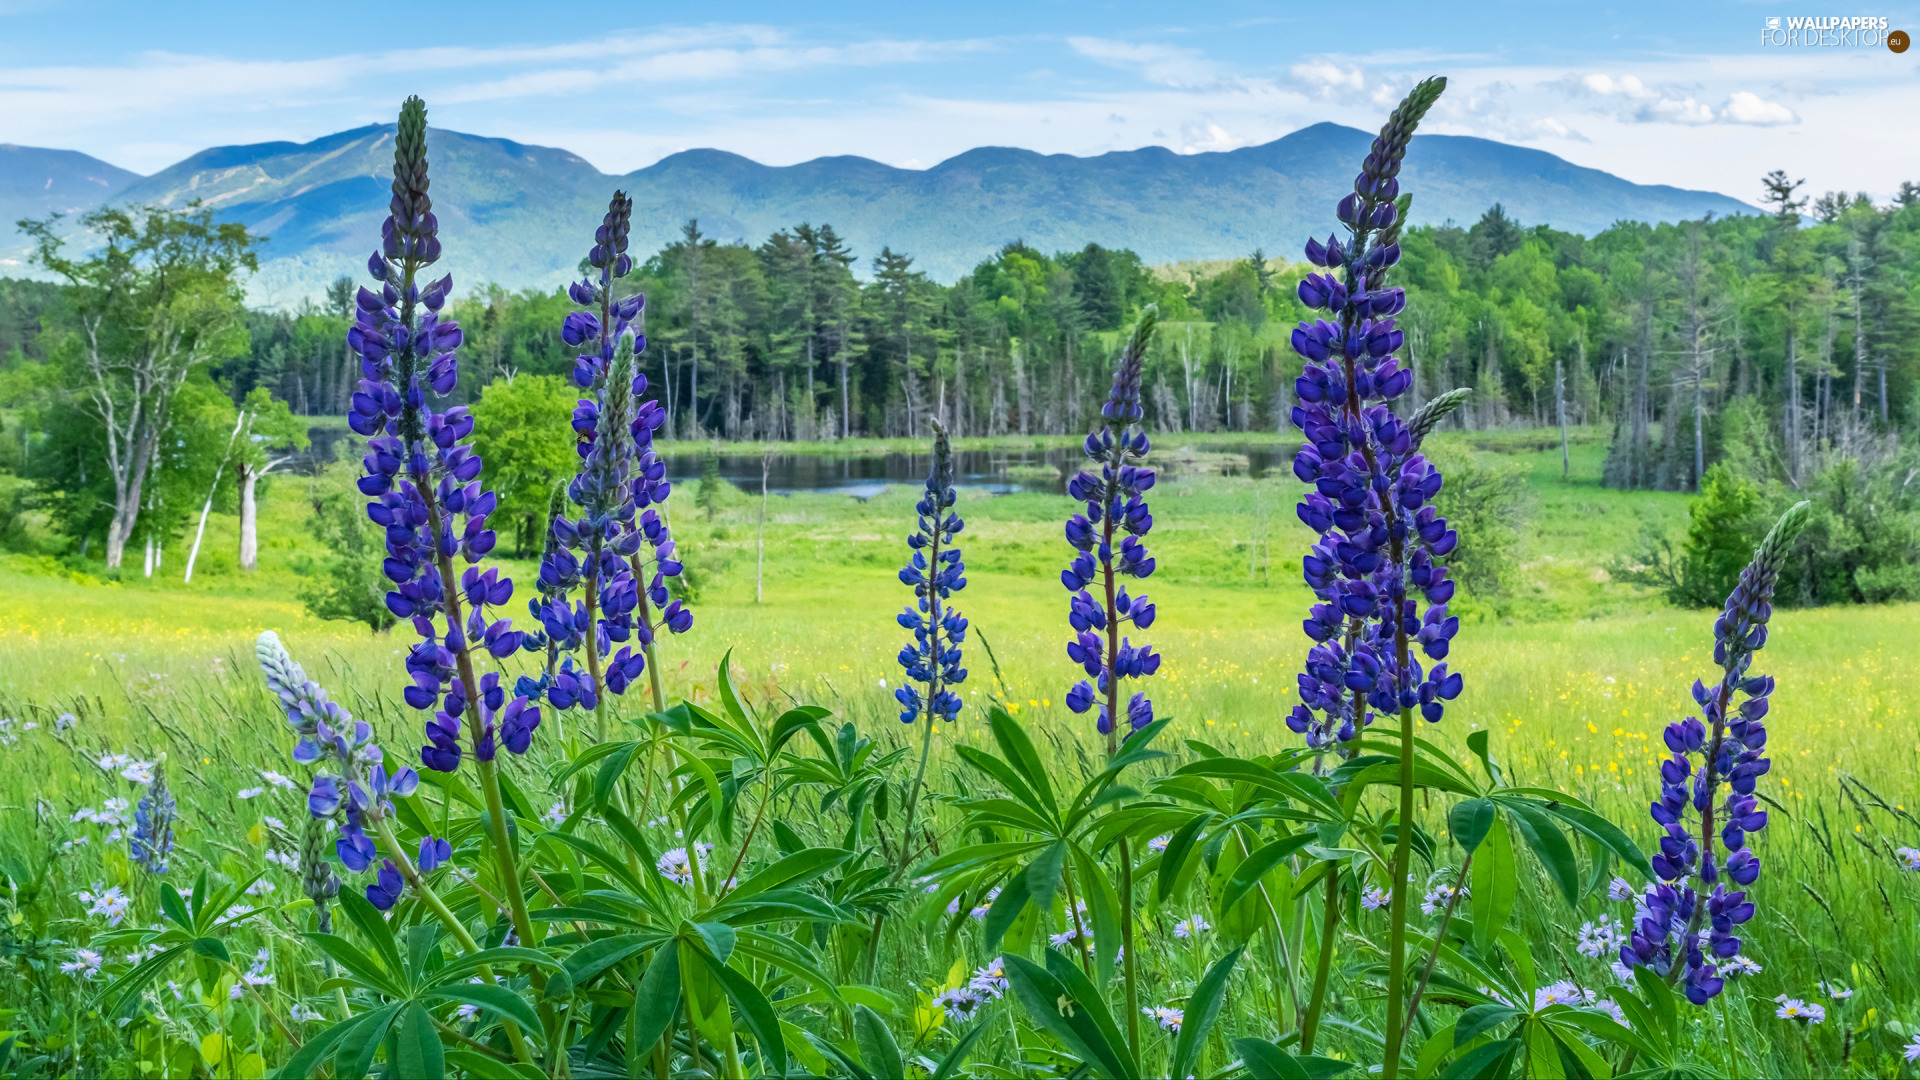 lupins, purple, trees, viewes, Mountains, Flowers